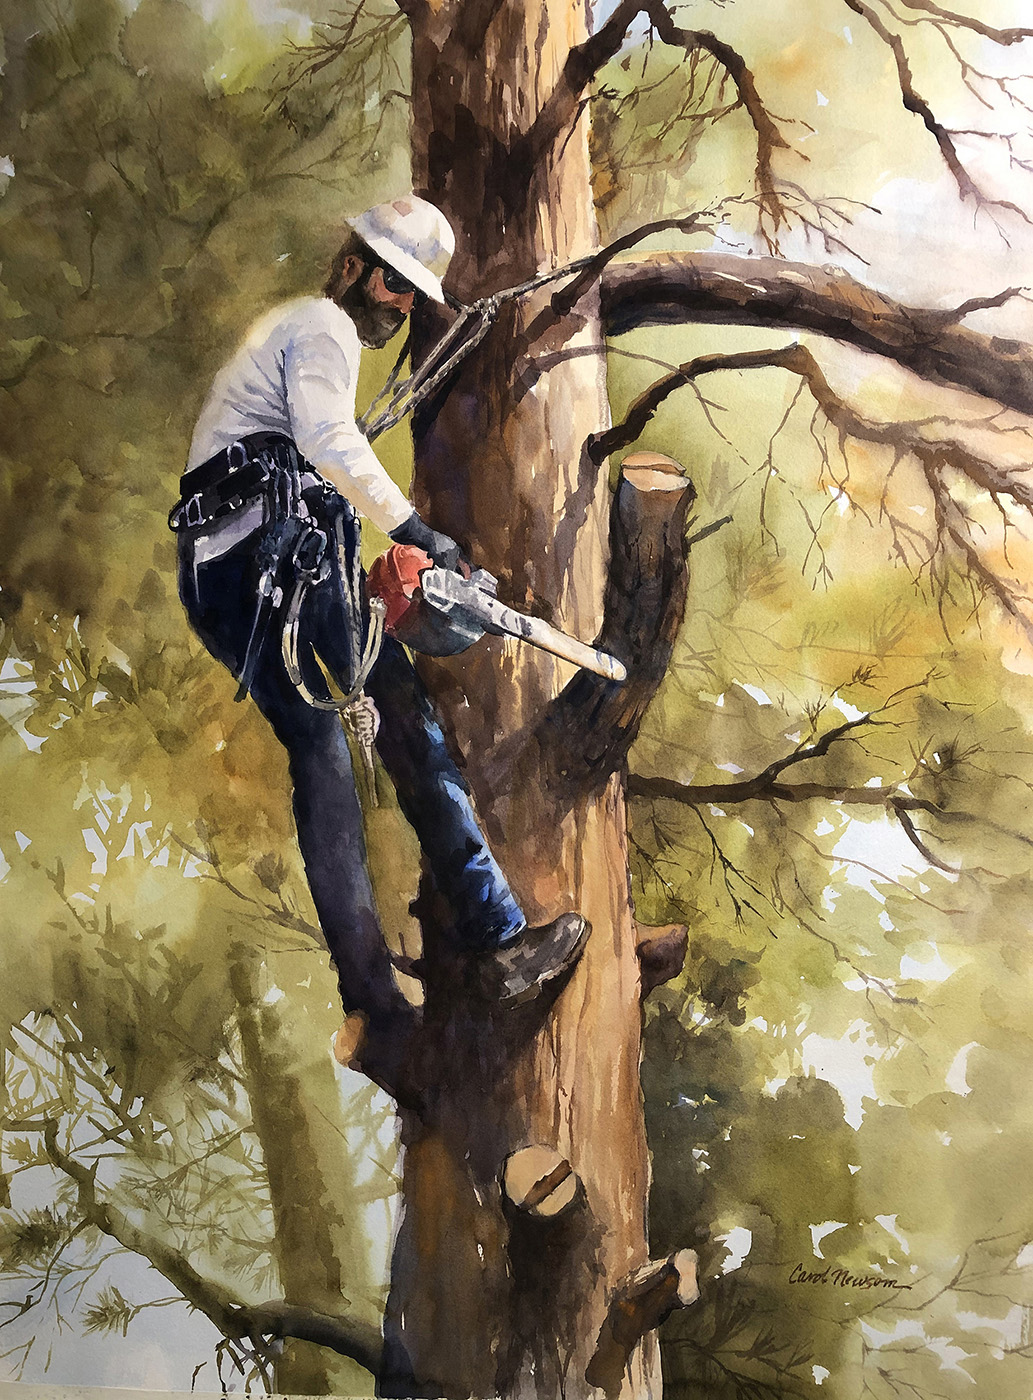 One day a guy came to our house and spent the day cutting down a tree. To me, it looked like he was posing for a painting. Watercolor...